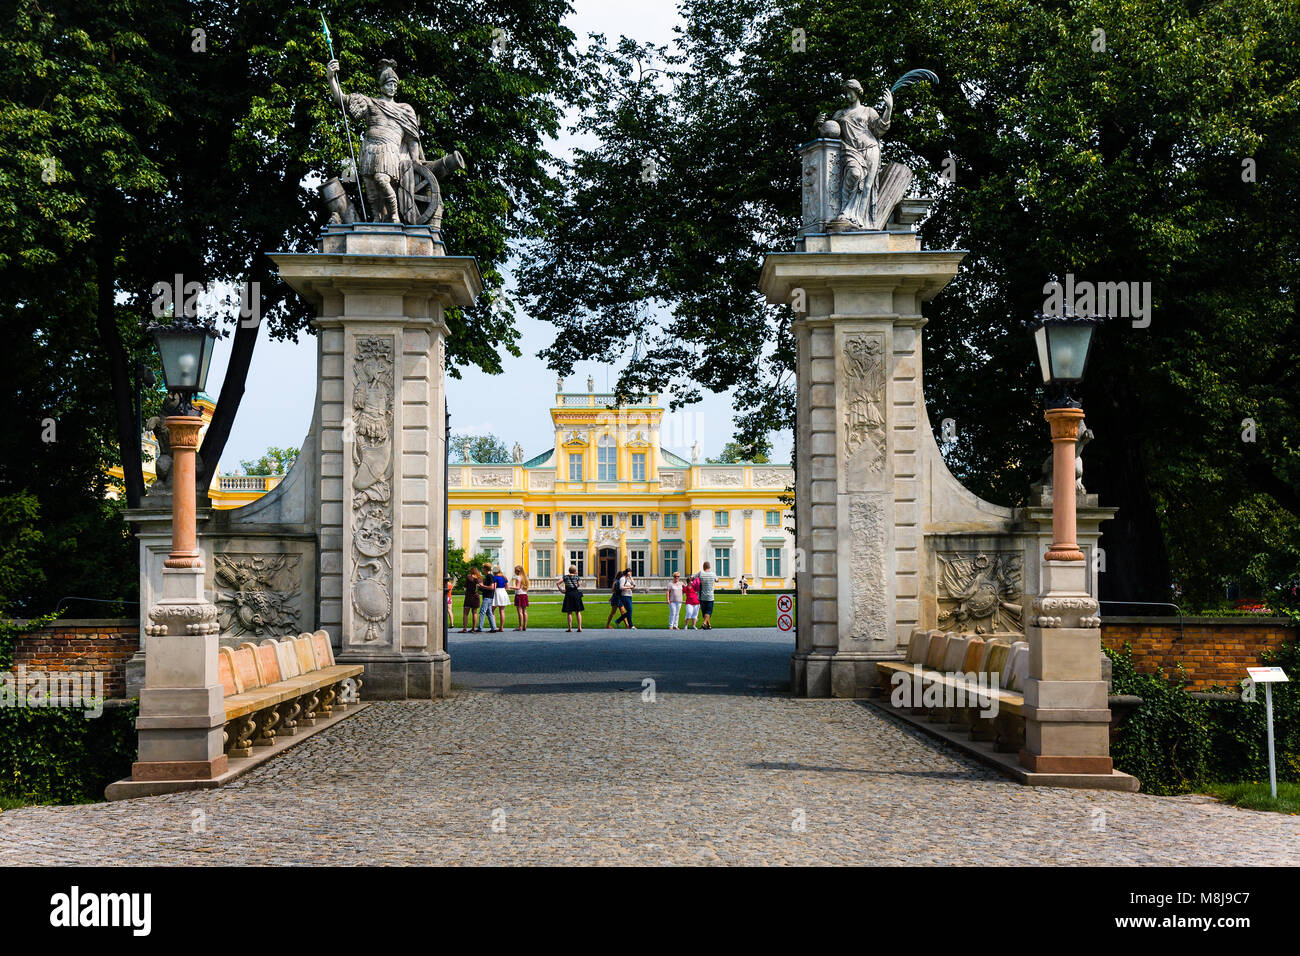 WARSAW, POLAND - JULY 26, 2014:  Tourists at the main entrance of the Wilanow Royal Palace park - Stock Image